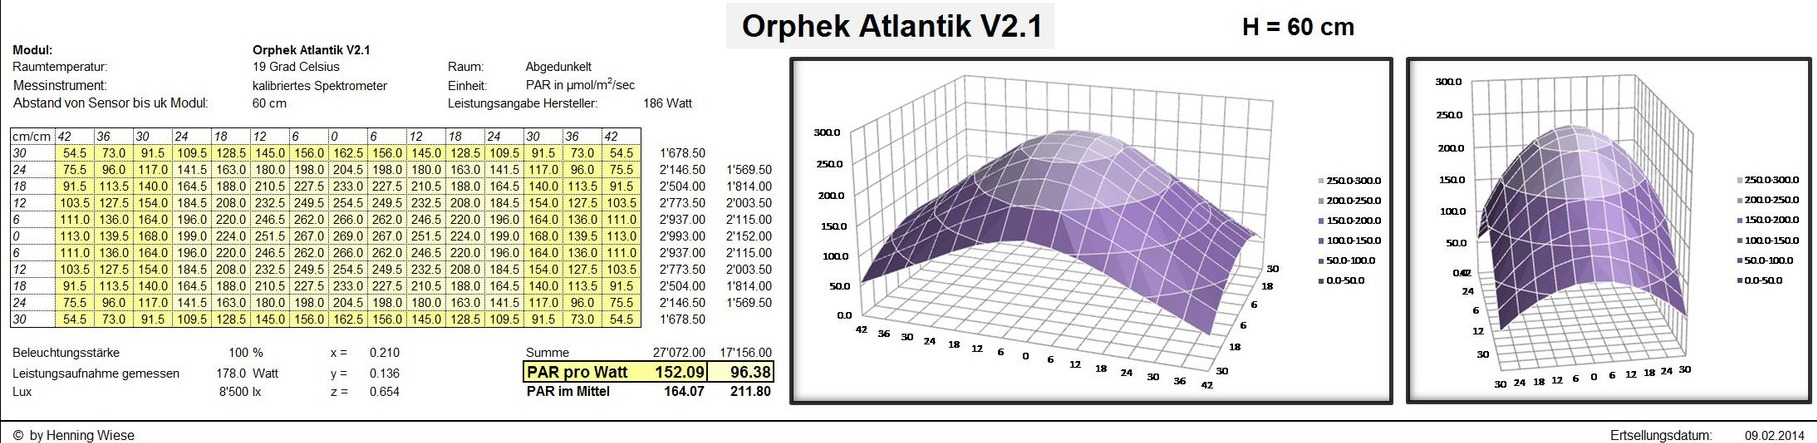 Orphek ATLANTIK V2.1 LED照明灯具-PAR每瓦MAP-PAR